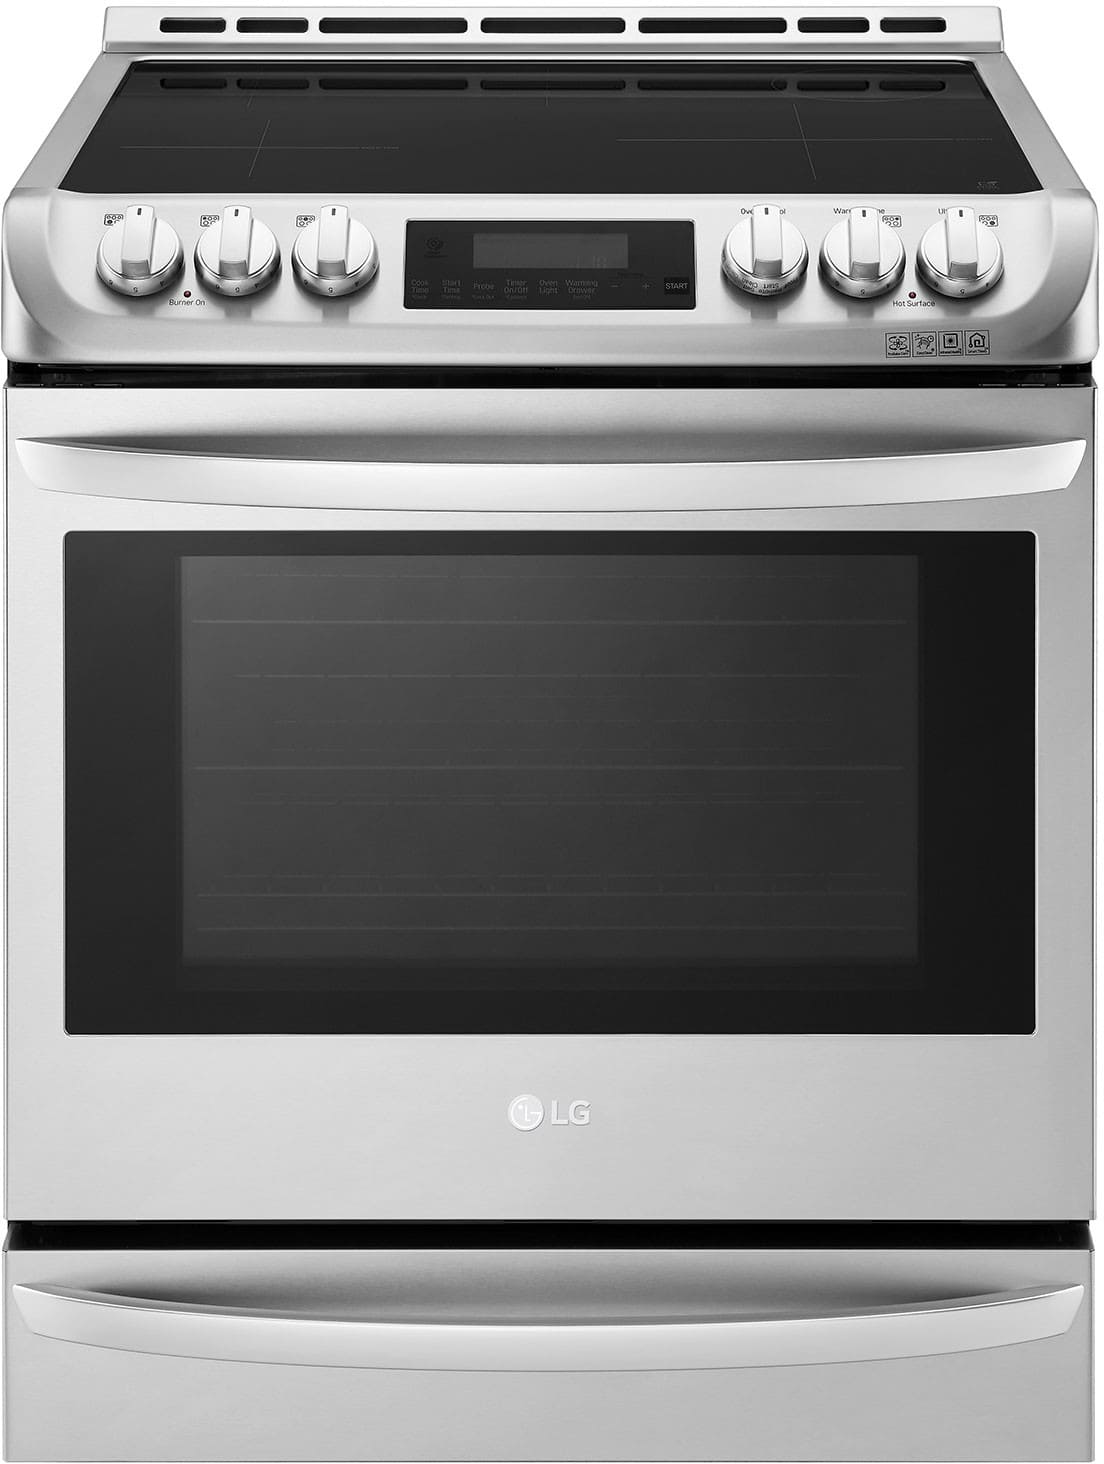 Delicieux LG LSE4617ST 30 Inch Slide In Induction Range With 6.3 Cu. Ft. Capacity, 5  Cooktop Zones, Infrared Grill, 11 Cooking Modes, ProBake Convection, Pizza  Mode, ...